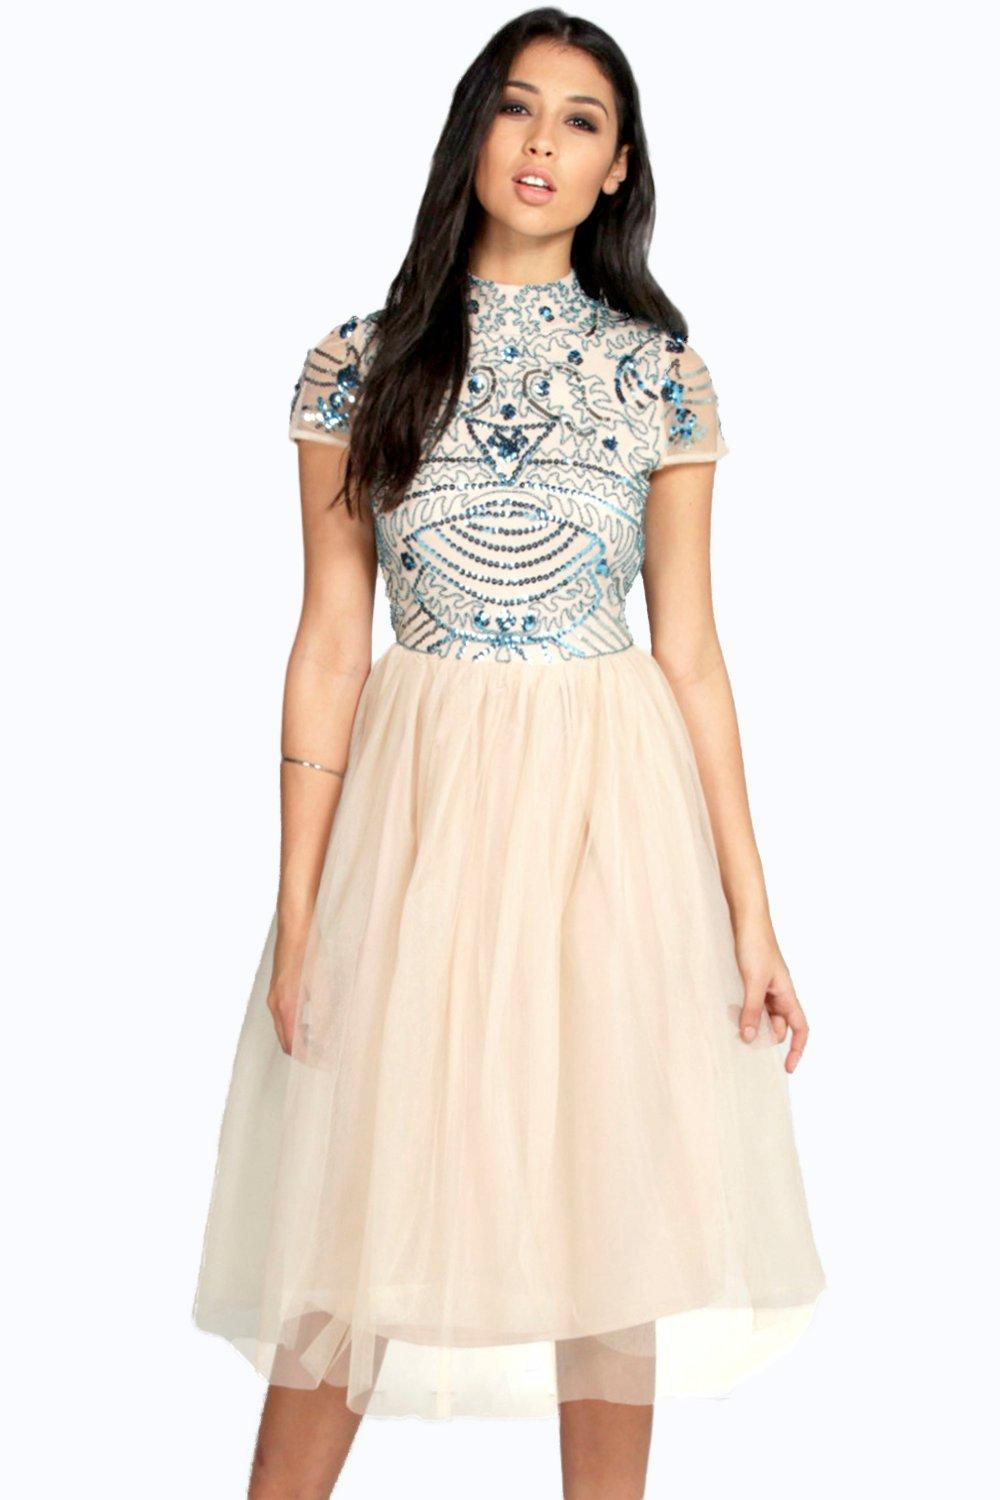 Boohoo womens boutique ely embellished top tutu skirt for Boutique tops